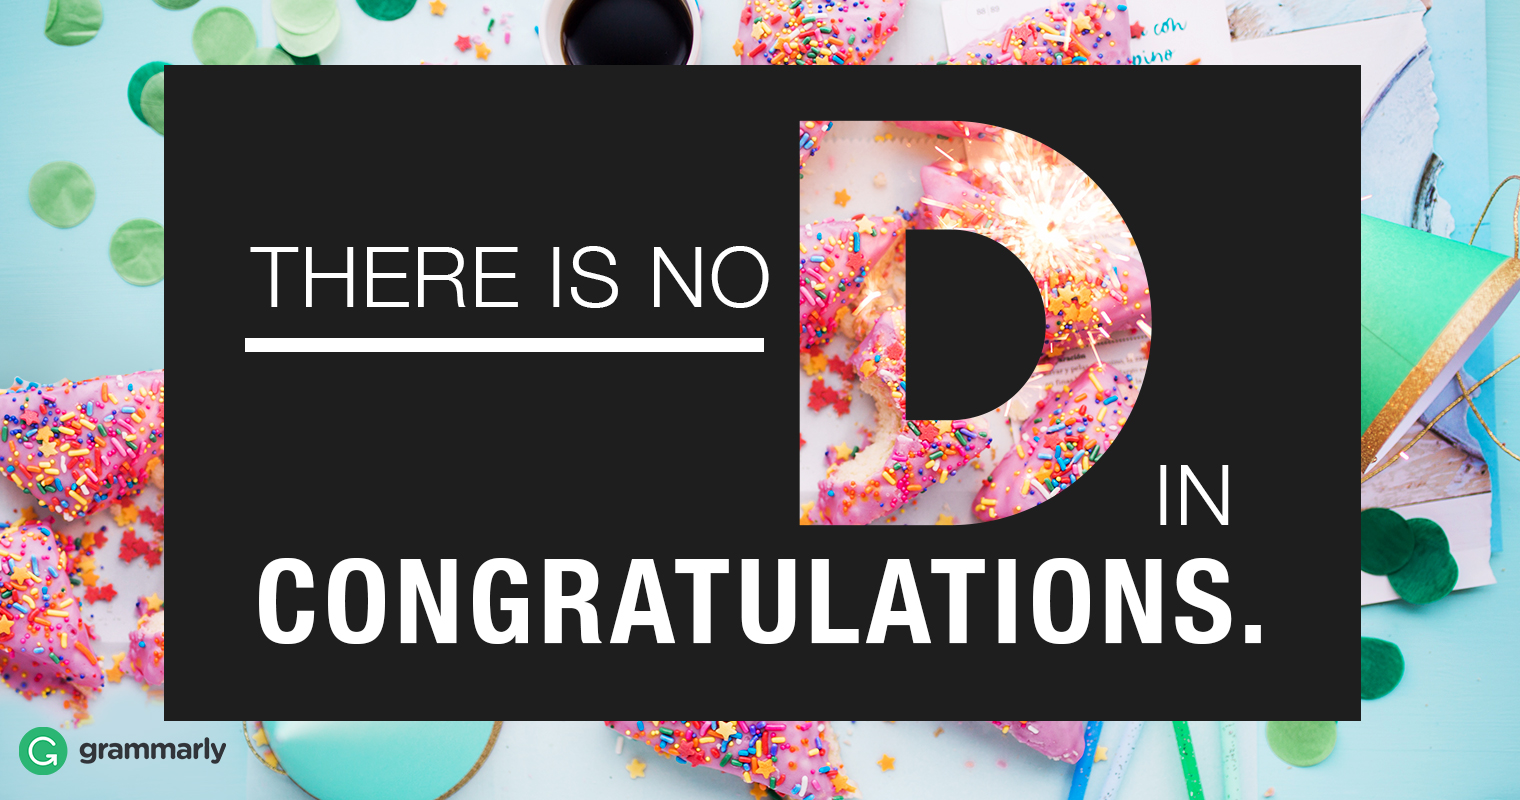 Congradulations or Congratulations—Which Is Right? image